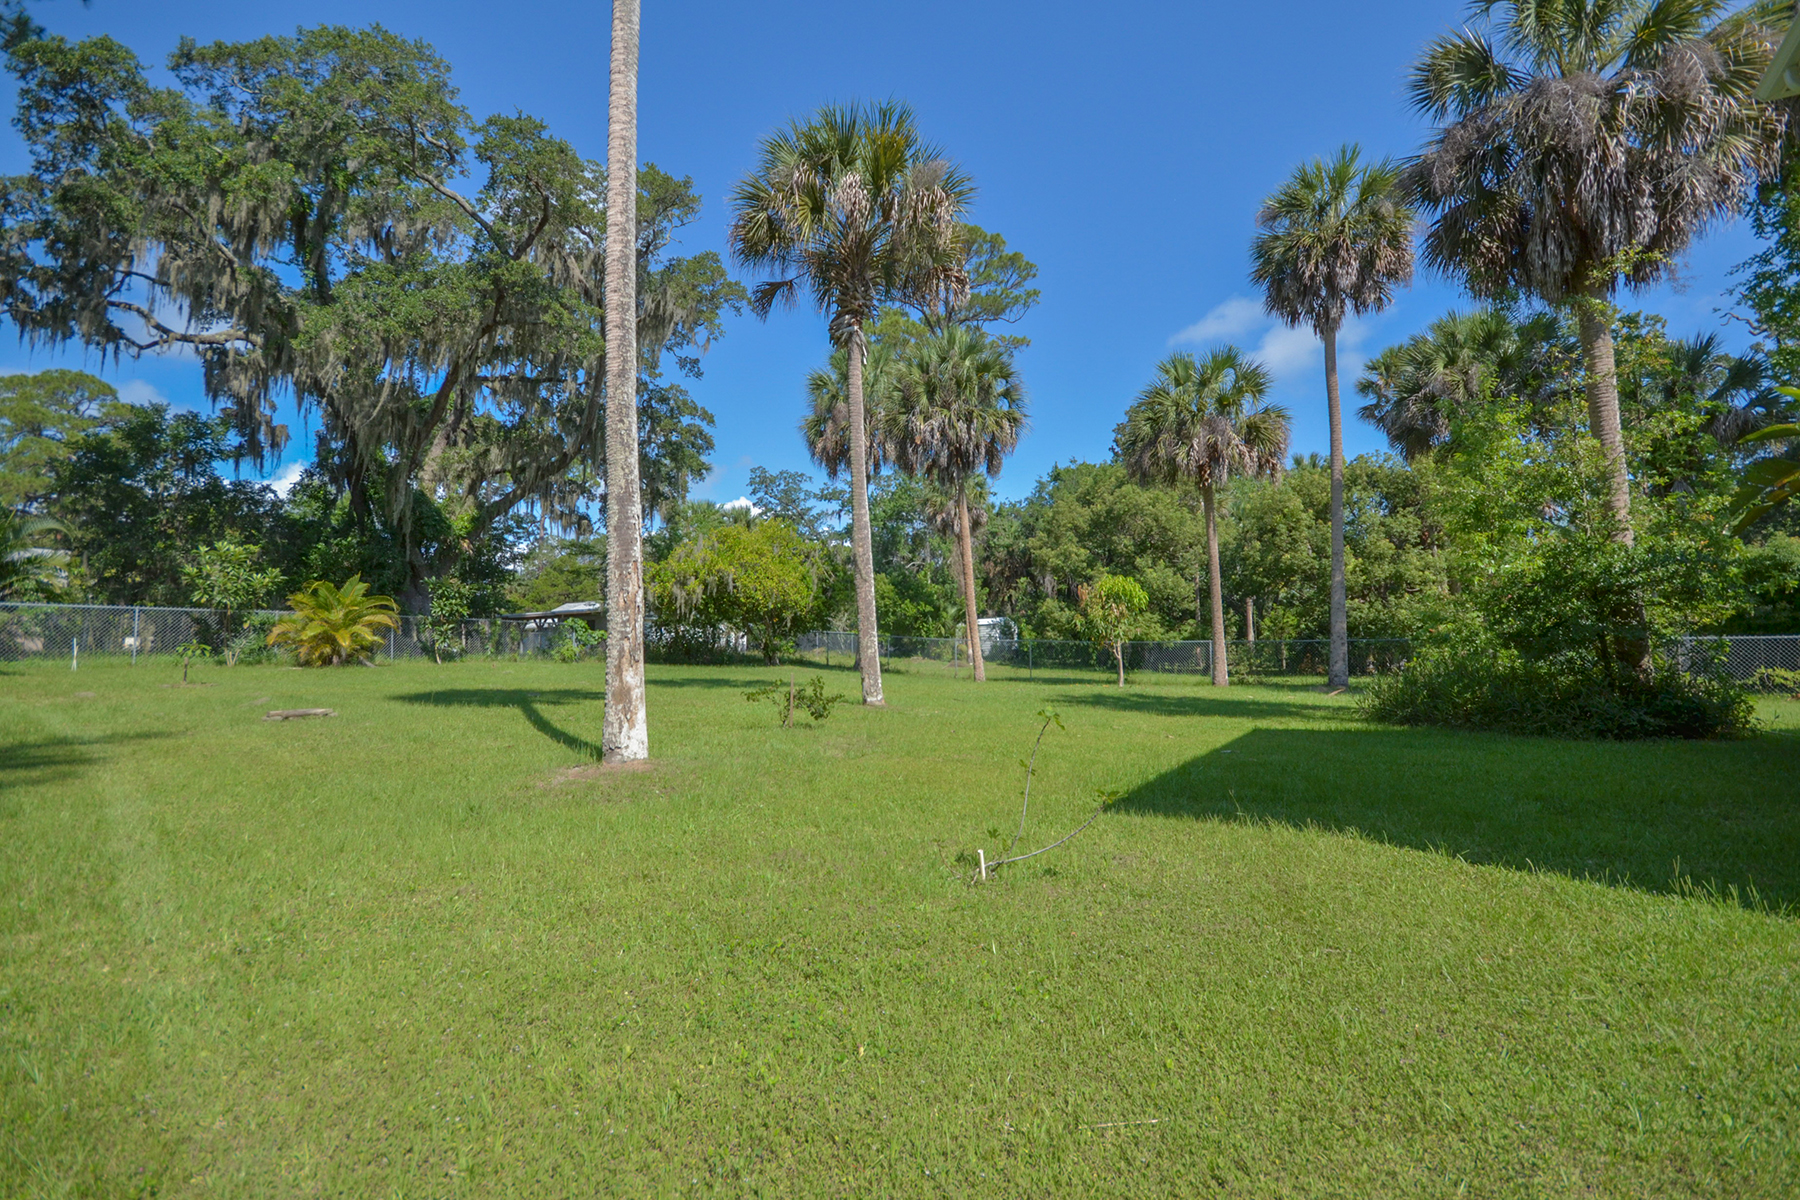 Additional photo for property listing at DAYTONA BEACH - HOLLY HILL 1618  Riverside Dr,  Holly Hill, Florida 32117 United States